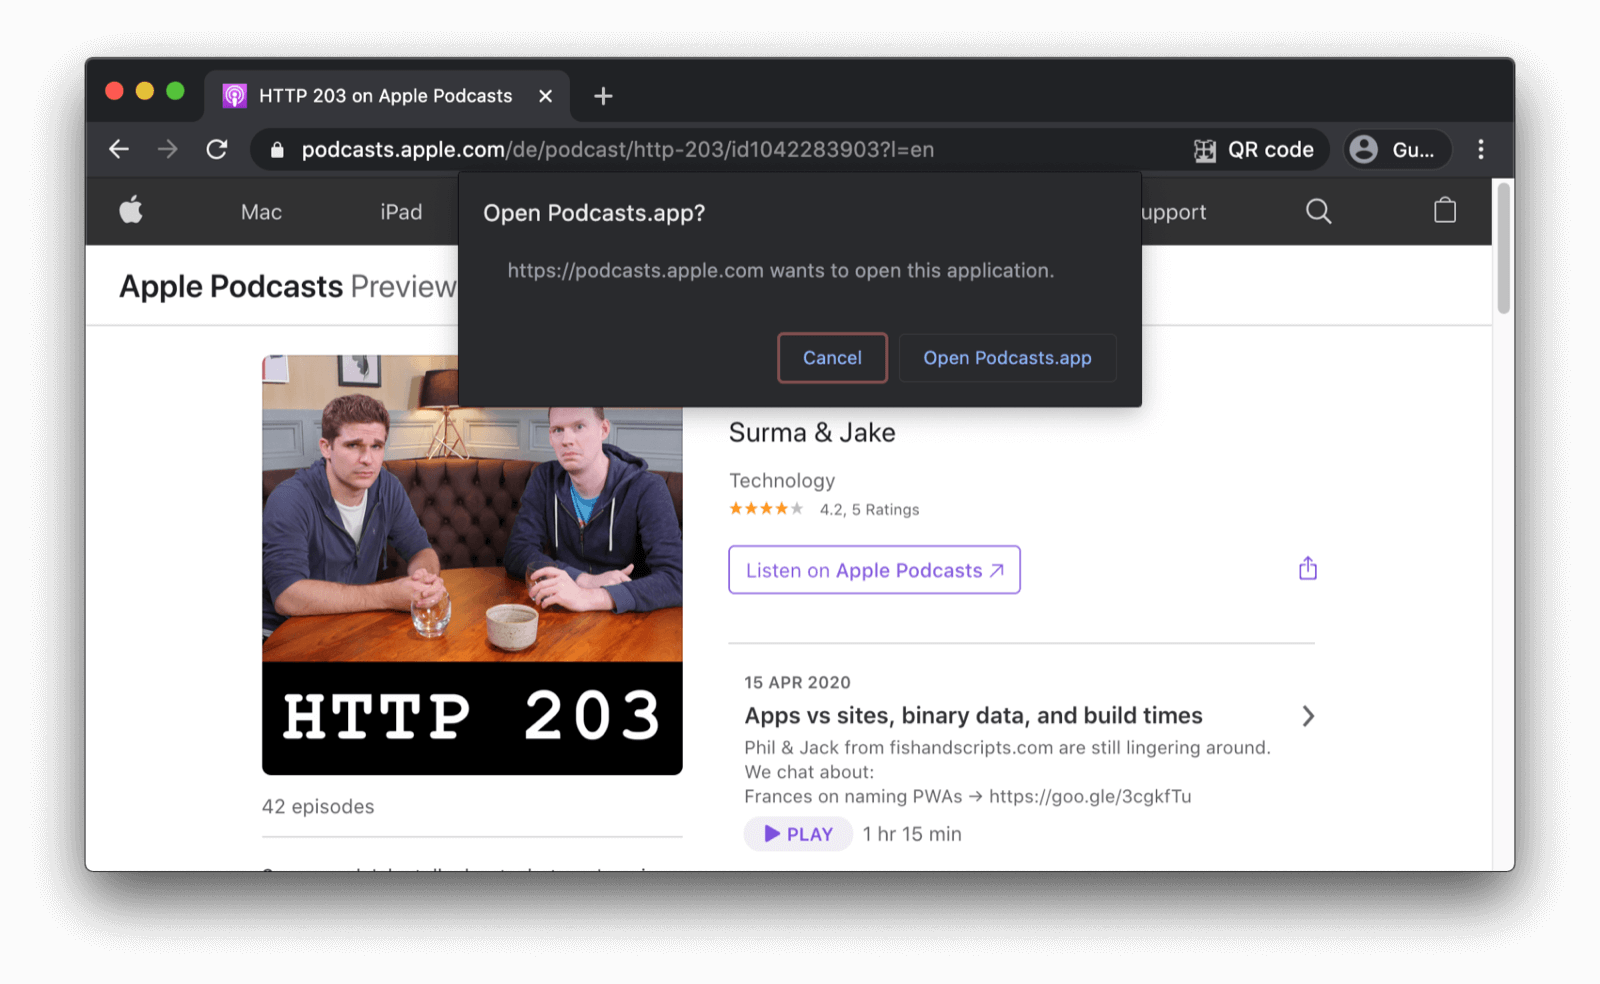 The Chrome browser showing a confirmation dialog asking the user whether they want to open the Podcasts app.